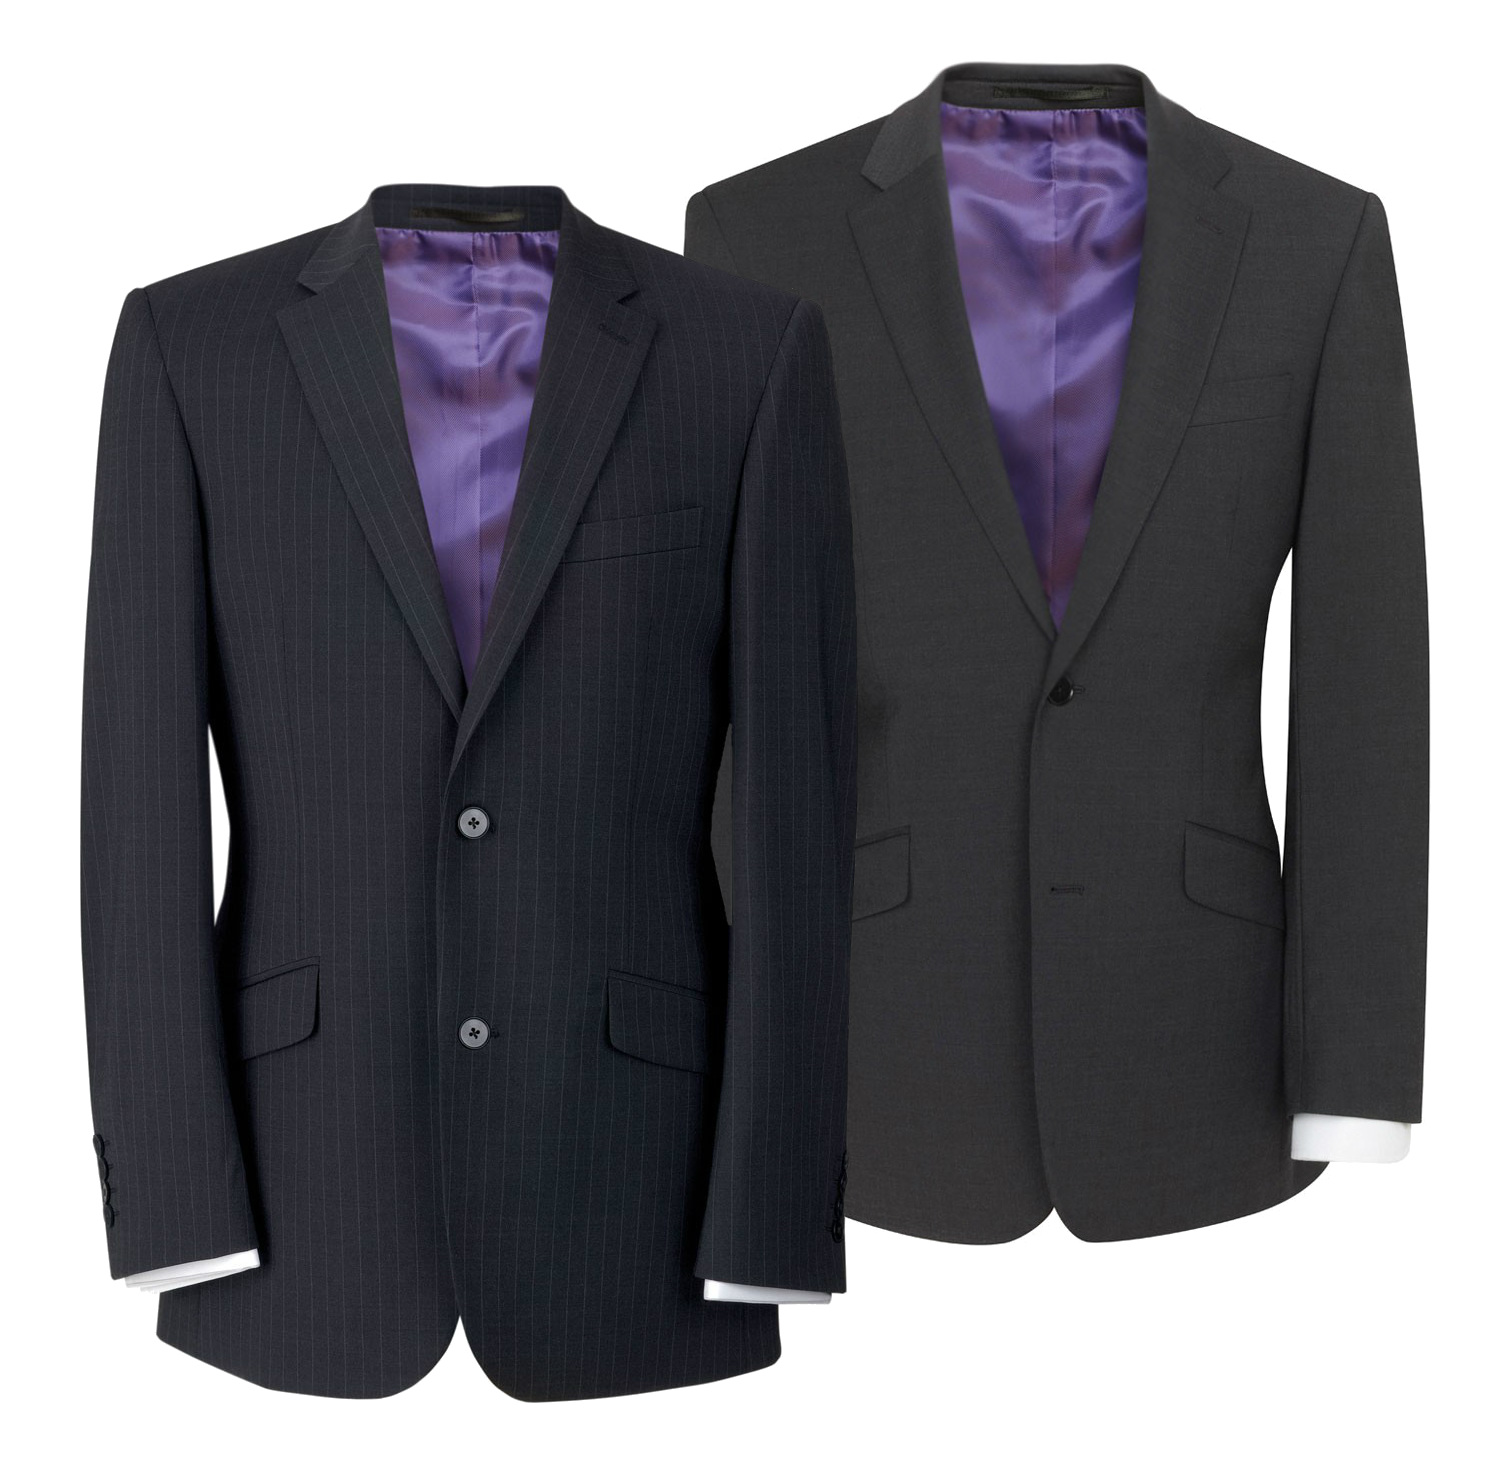 9a154bc825884 Brook Taverner Avalino 5647 Single Breasted Tailored Fit Jacket